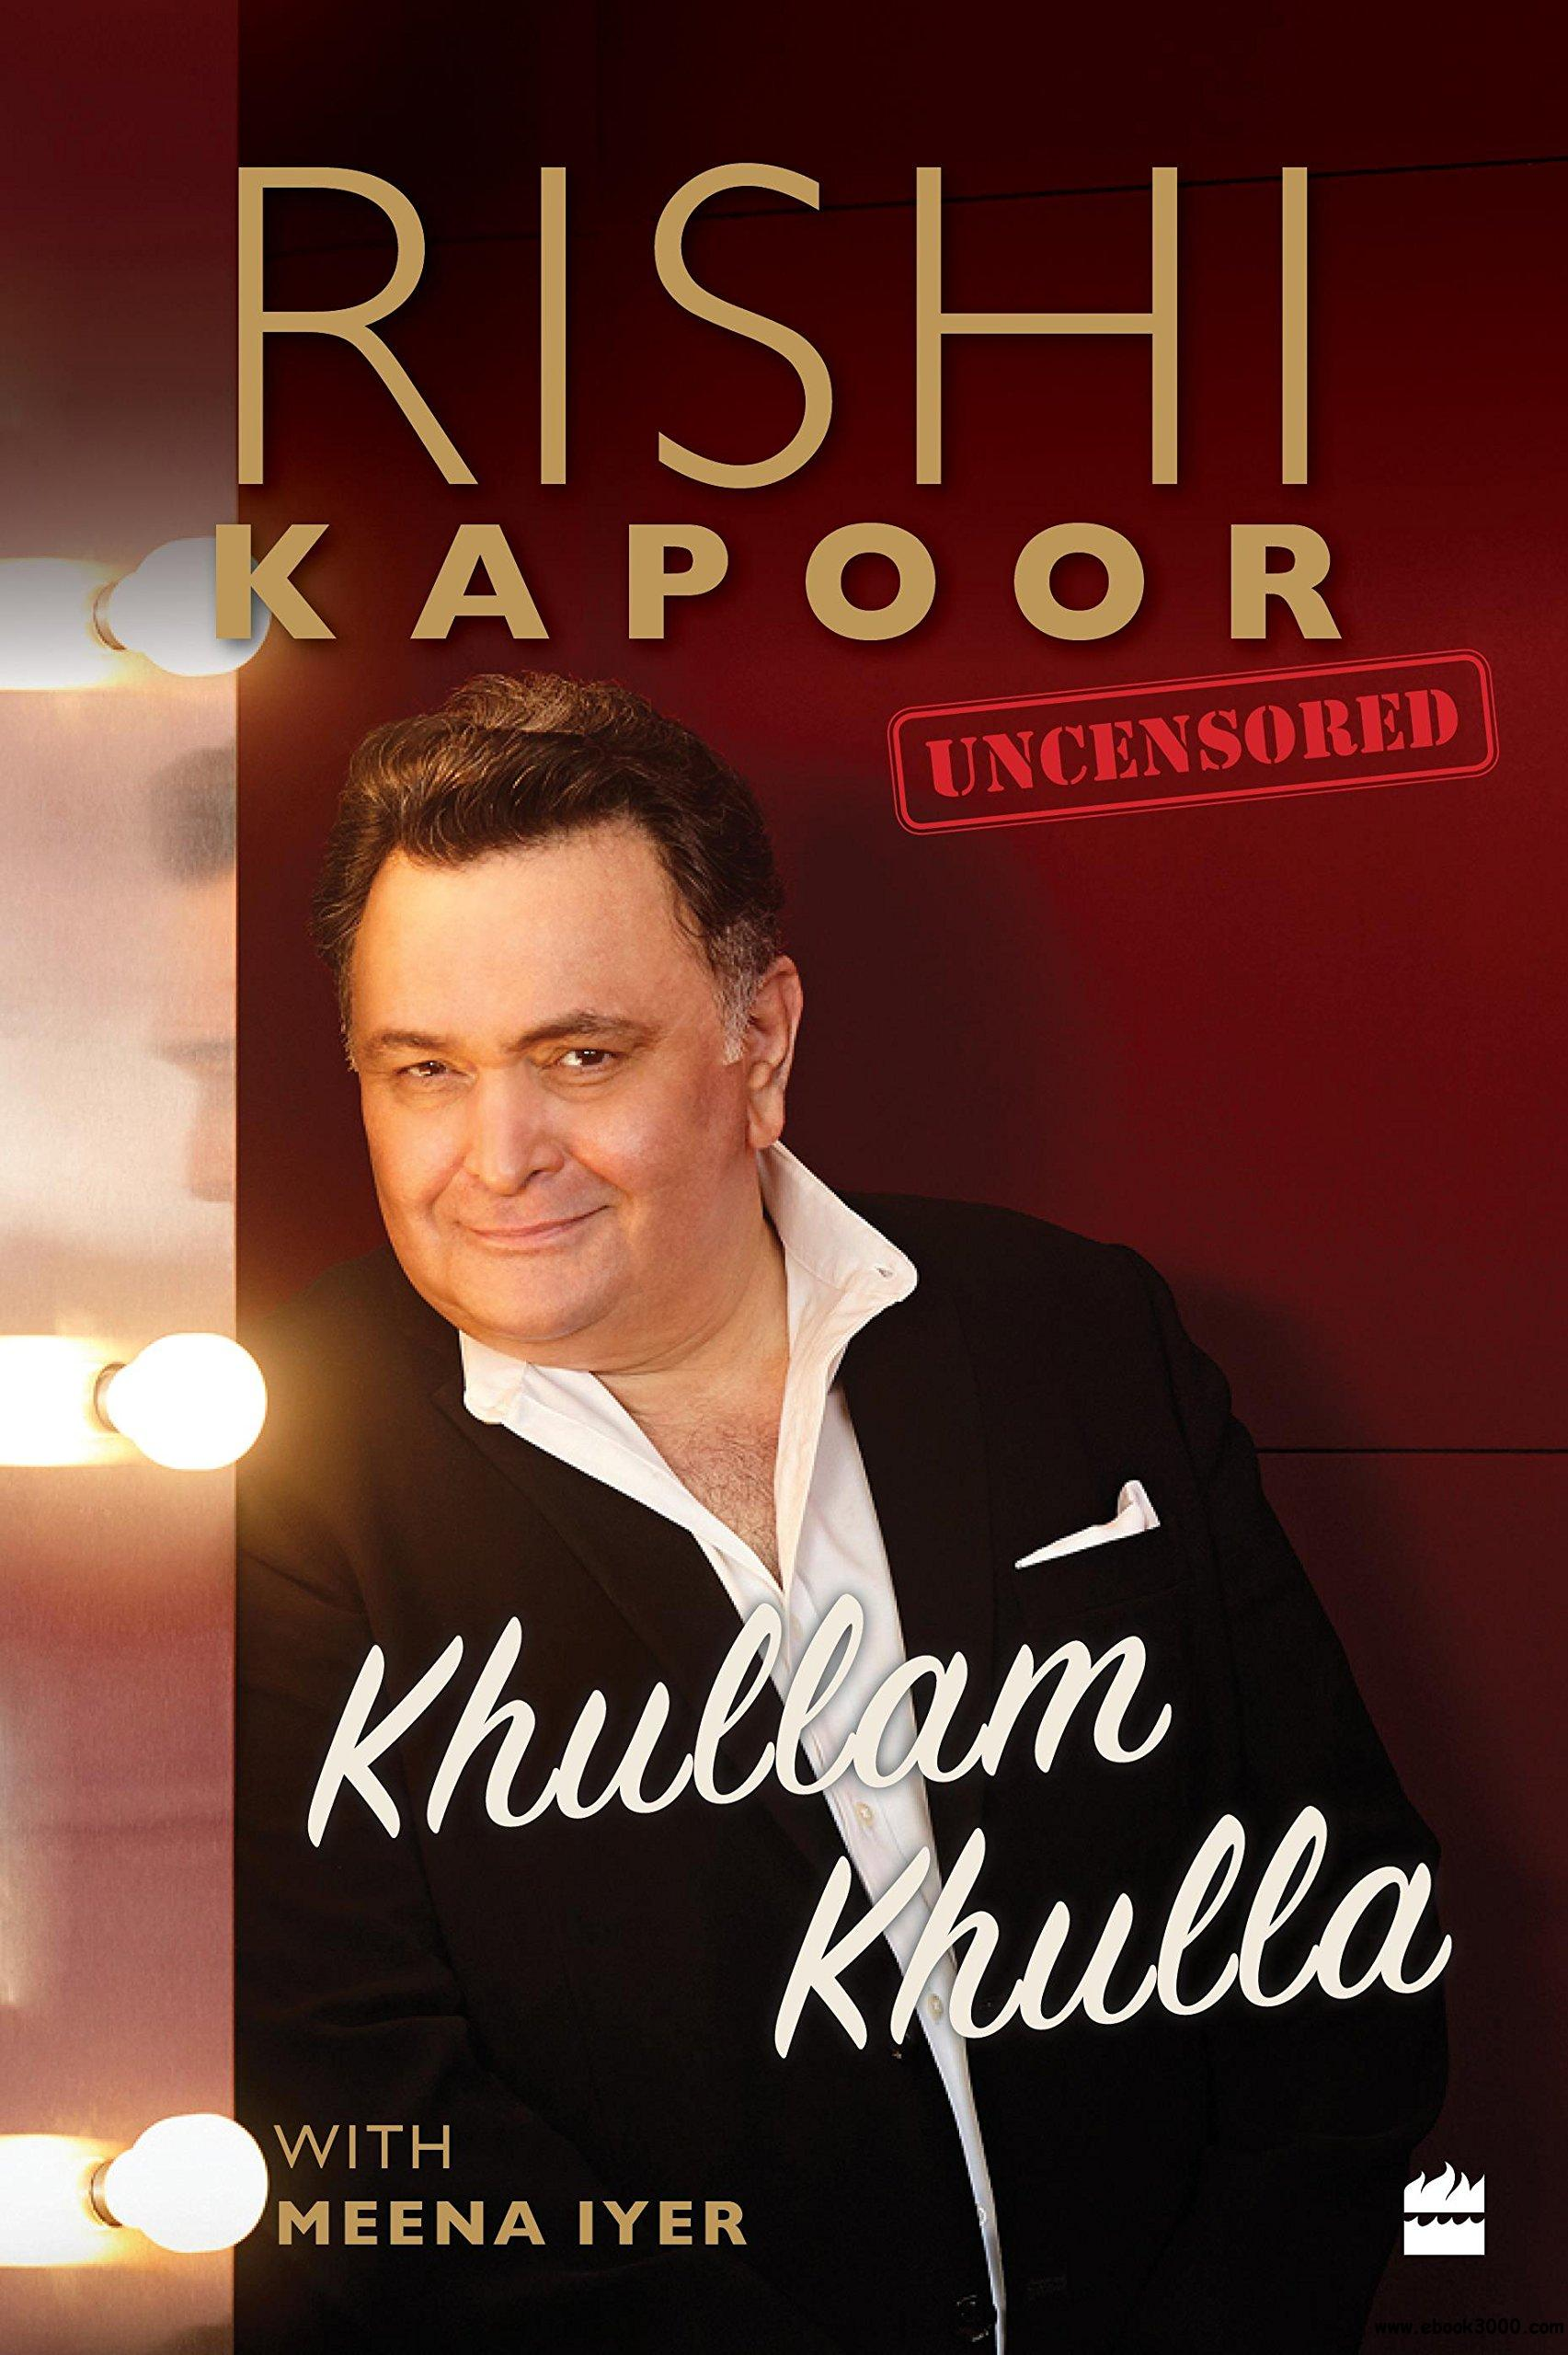 rishi kapoor book pdf in hindi free download